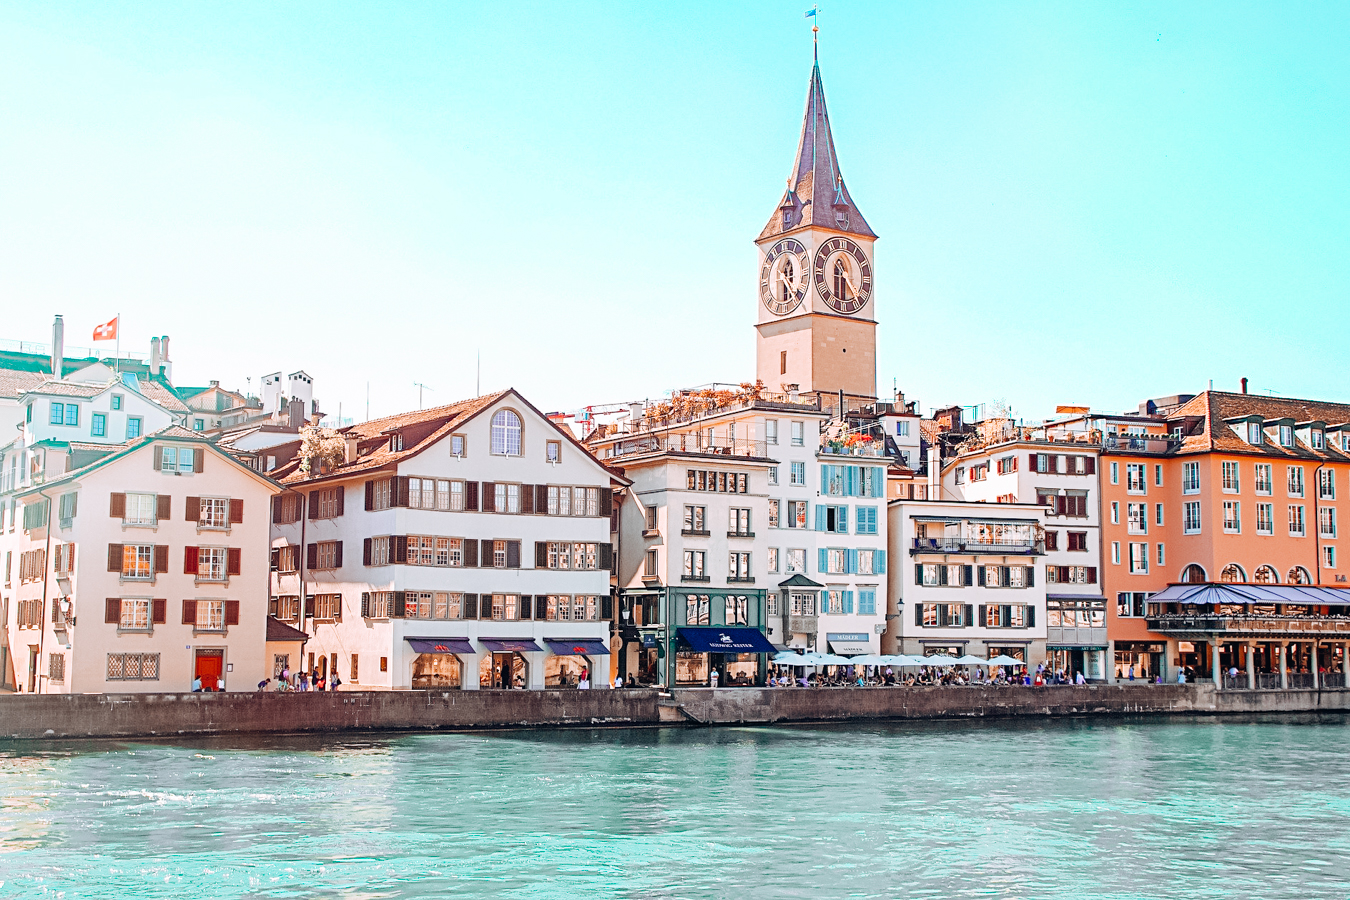 A beautiful view of buildings at Lake Zürich in Switzerland